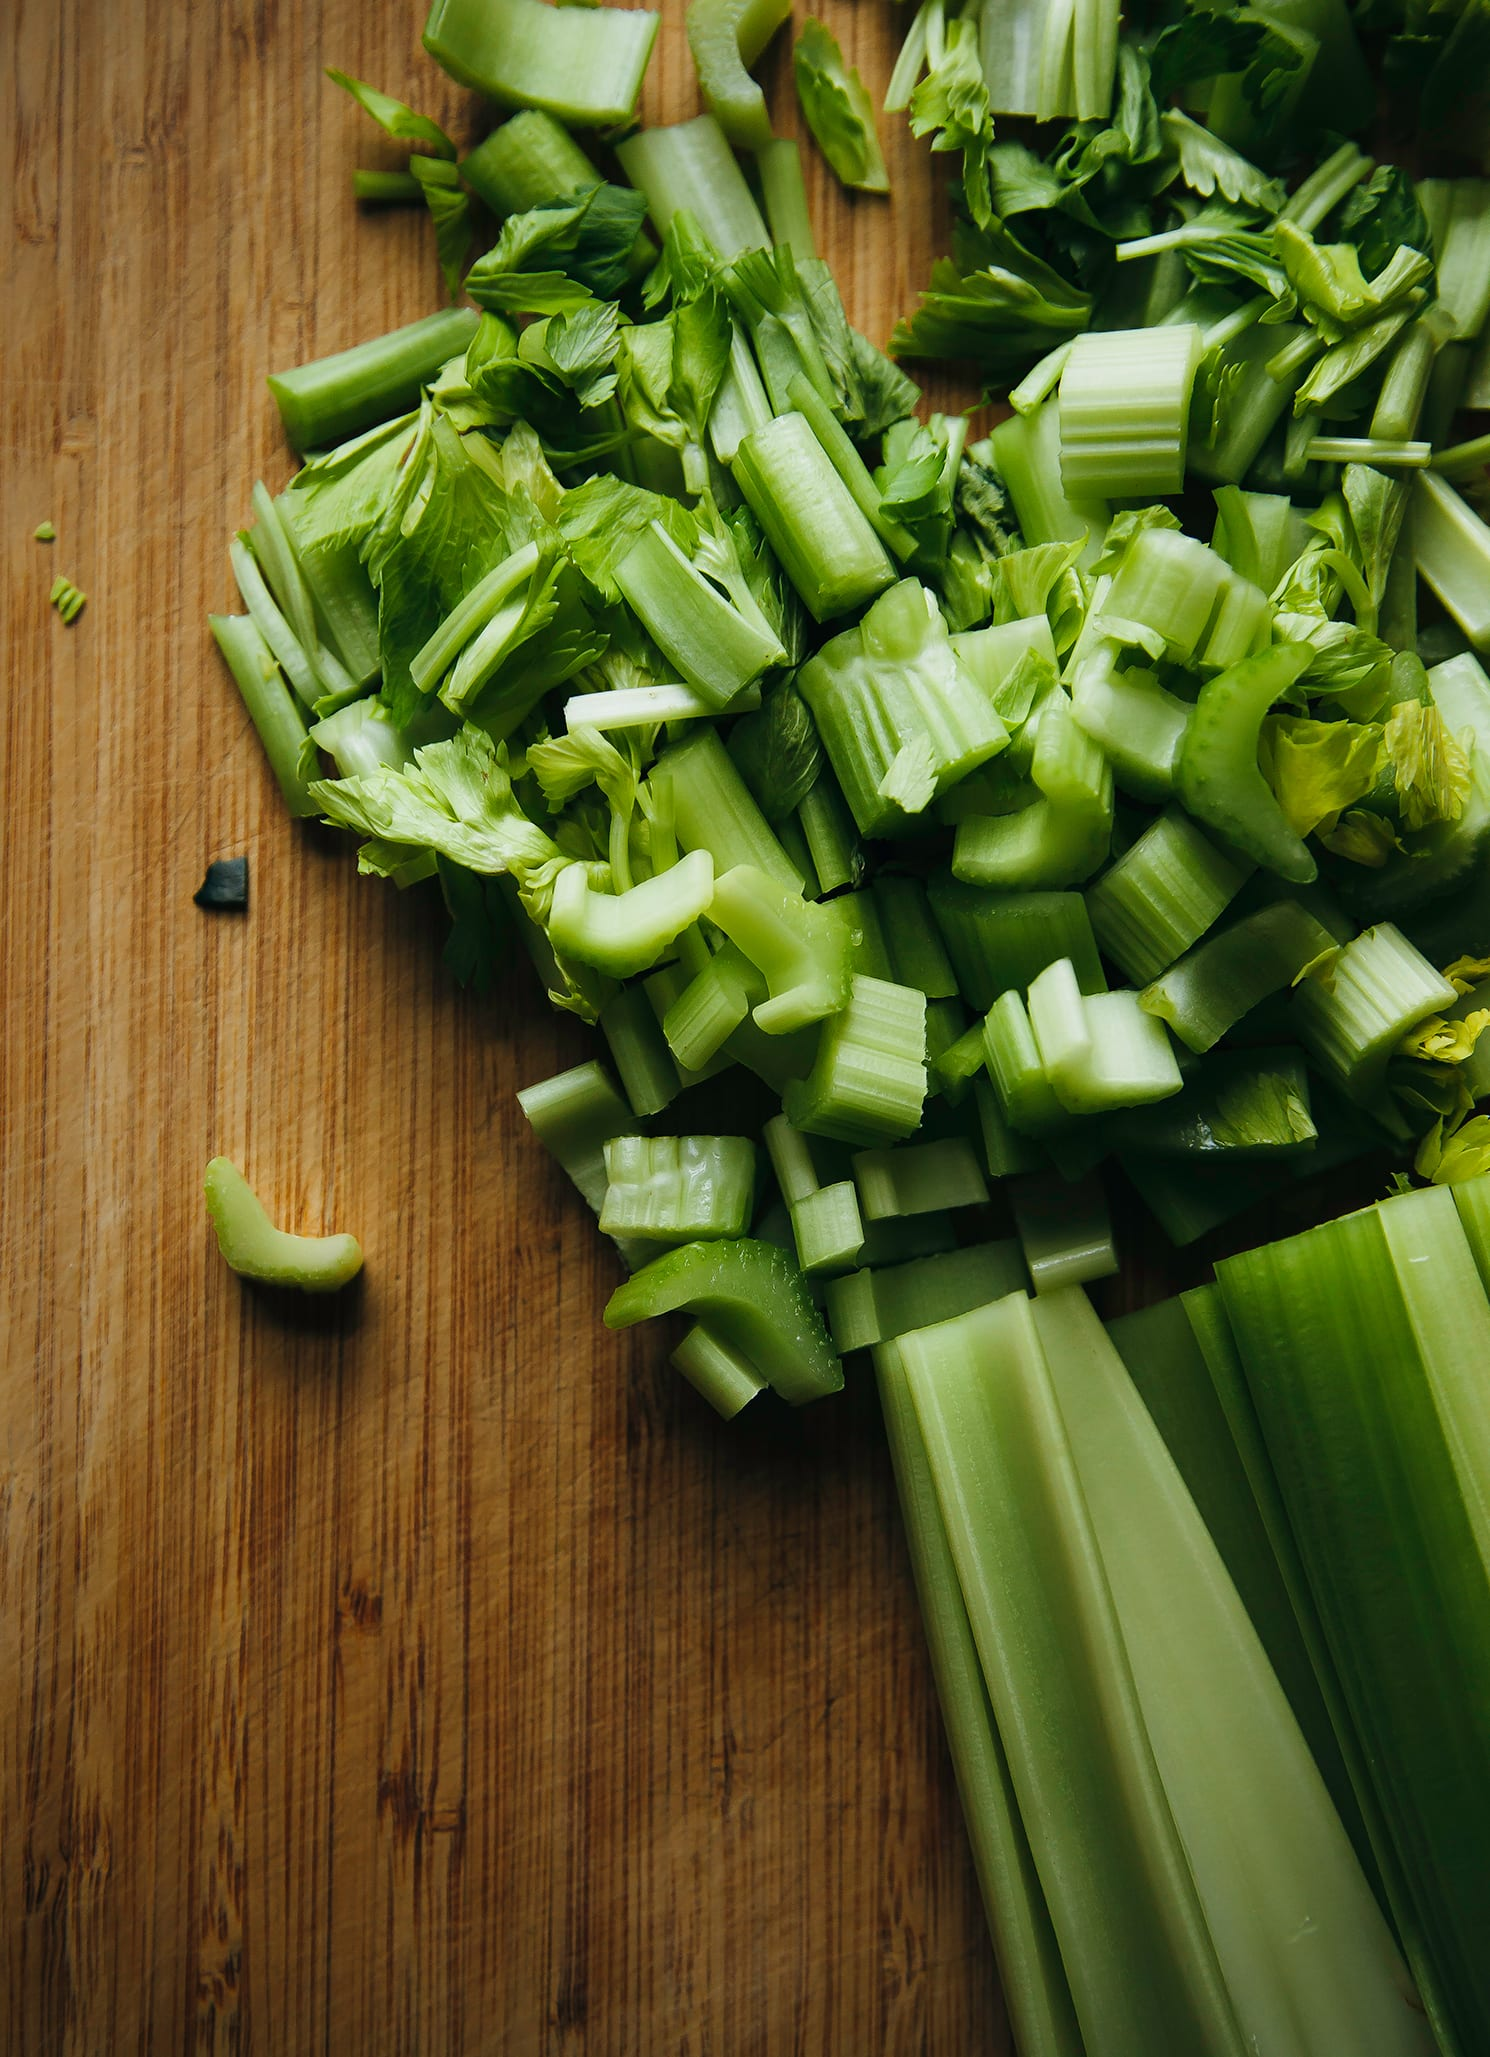 Up close shot of chopped celery on a bamboo cutting board